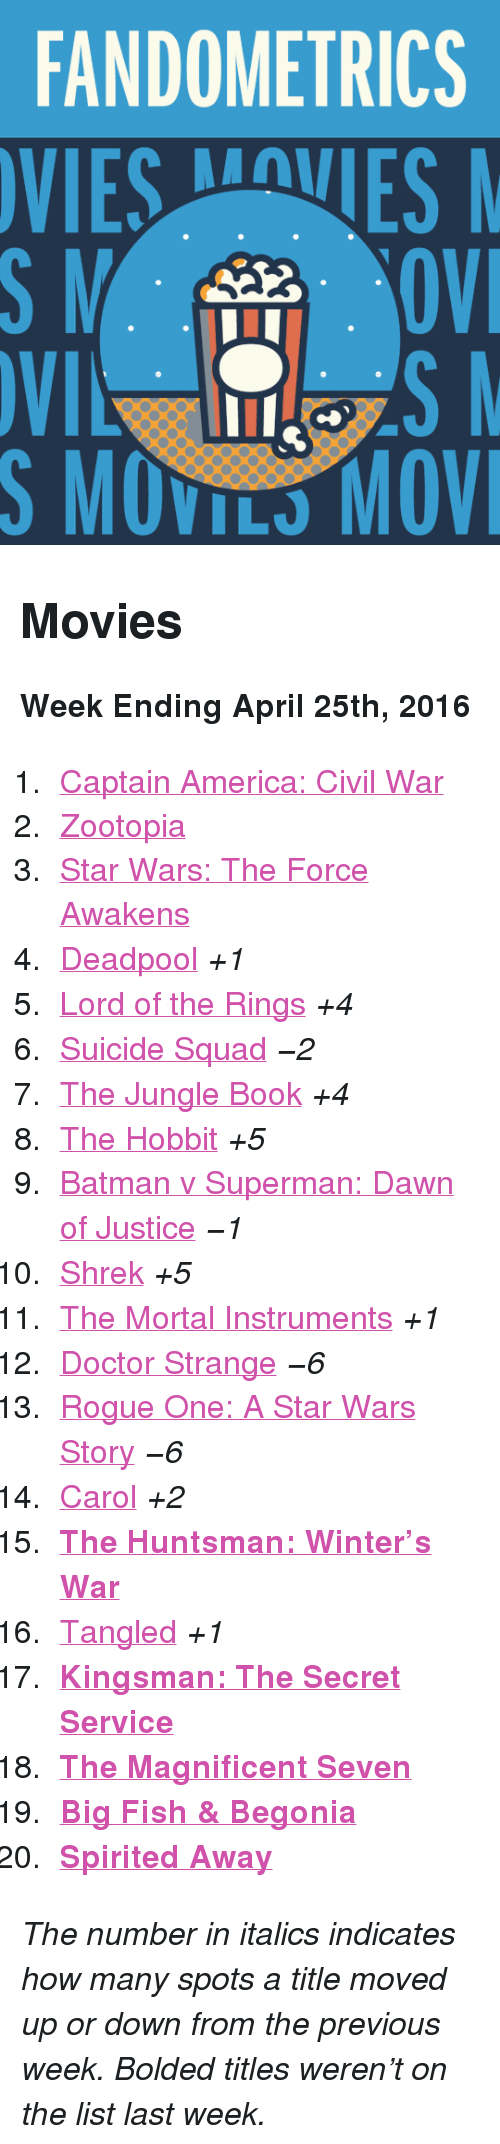 """Big Fish: FANDOMETRICS  VIESVES  S MOVILS MOV <h2>Movies</h2><p><b>Week Ending April 25th, 2016</b></p><ol><li><a href=""""http://www.tumblr.com/search/captain%20america%20civil%20war"""">Captain America: Civil War</a></li>  <li><a href=""""http://www.tumblr.com/search/zootopia"""">Zootopia</a></li>  <li><a href=""""http://www.tumblr.com/search/the%20force%20awakens"""">Star Wars: The Force Awakens</a></li>  <li><a href=""""http://www.tumblr.com/search/deadpool"""">Deadpool</a><i>+1</i></li>  <li><a href=""""http://www.tumblr.com/search/lotr"""">Lord of the Rings</a><i>+4</i></li>  <li><a href=""""http://www.tumblr.com/search/suicide%20squad"""">Suicide Squad</a><i>−2</i></li>  <li><a href=""""http://www.tumblr.com/search/the%20jungle%20book"""">The Jungle Book</a><i>+4</i></li>  <li><a href=""""http://www.tumblr.com/search/the%20hobbit"""">The Hobbit</a><i>+5</i></li>  <li><a href=""""http://www.tumblr.com/search/batman%20v%20superman"""">Batman v Superman: Dawn of Justice</a><i>−1</i></li>  <li><a href=""""http://www.tumblr.com/search/shrek"""">Shrek</a><i>+5</i></li>  <li><a href=""""http://www.tumblr.com/search/the%20mortal%20instruments"""">The Mortal Instruments</a><i>+1</i></li>  <li><a href=""""http://www.tumblr.com/search/doctor%20strange"""">Doctor Strange</a><i>−6</i></li>  <li><a href=""""http://www.tumblr.com/search/rogue%20one"""">Rogue One: A Star Wars Story</a><i>−6</i></li>  <li><a href=""""http://www.tumblr.com/search/carol"""">Carol</a><i>+2</i></li>  <li><a href=""""http://www.tumblr.com/search/the%20huntsman""""><b>The Huntsman: Winter&rsquo;s War</b></a></li>  <li><a href=""""http://www.tumblr.com/search/tangled"""">Tangled</a><i>+1</i></li>  <li><a href=""""http://www.tumblr.com/search/kingsman""""><b>Kingsman: The Secret Service</b></a></li>  <li><a href=""""http://www.tumblr.com/search/the%20magnificent%20seven""""><b>The Magnificent Seven</b></a></li>  <li><a href=""""http://www.tumblr.com/search/big%20fish%20and%20begonia""""><b>Big Fish &amp; Begonia</b></a></li>  <li><a href=""""http://www.tumblr.com/search/spirited%20away""""><b>Spirited Away</b></a></li"""